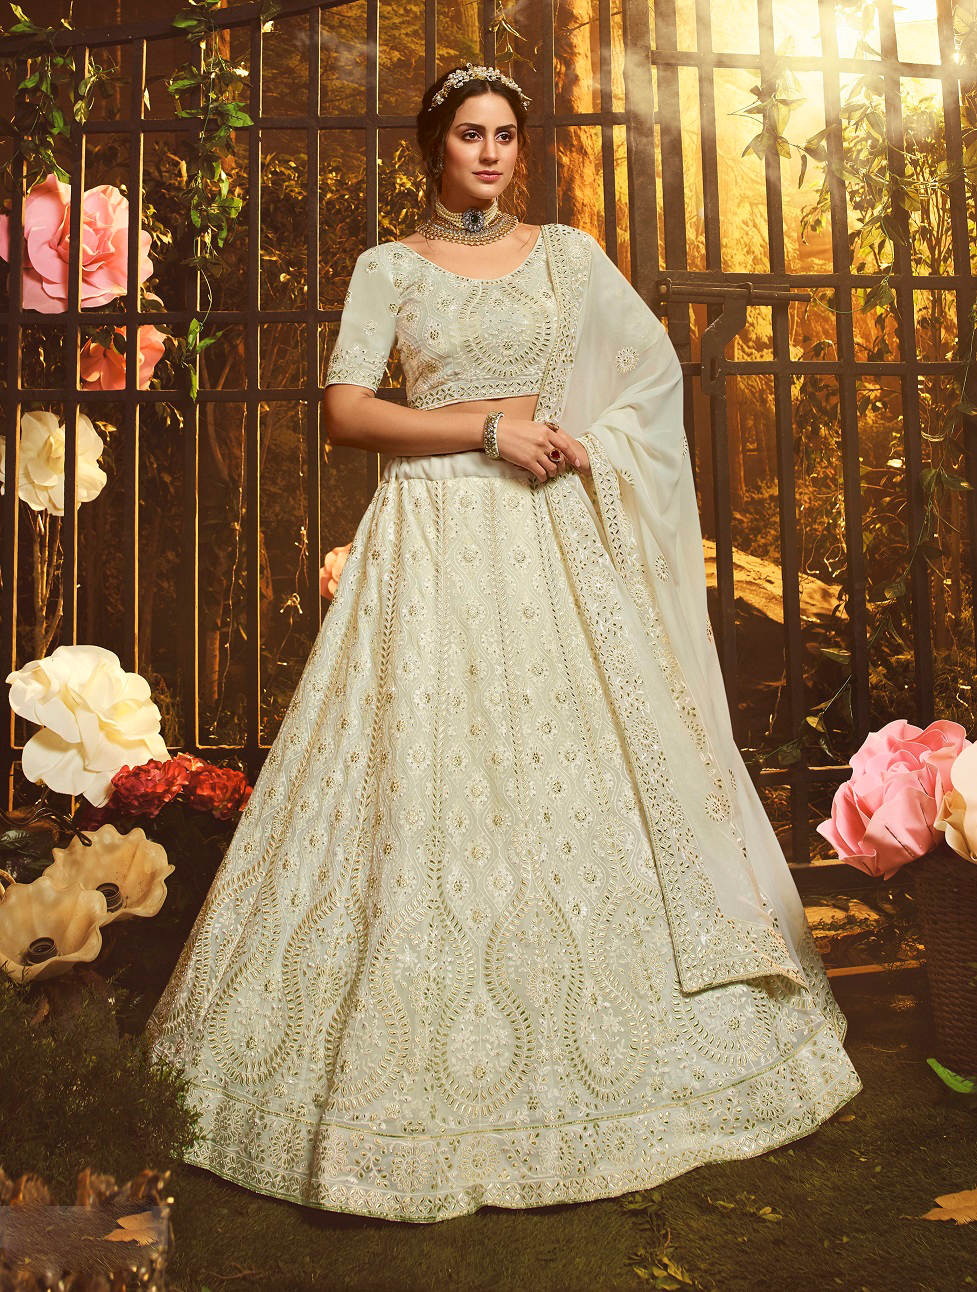 New designer best georgette white color gown with a soft net white dupatta.